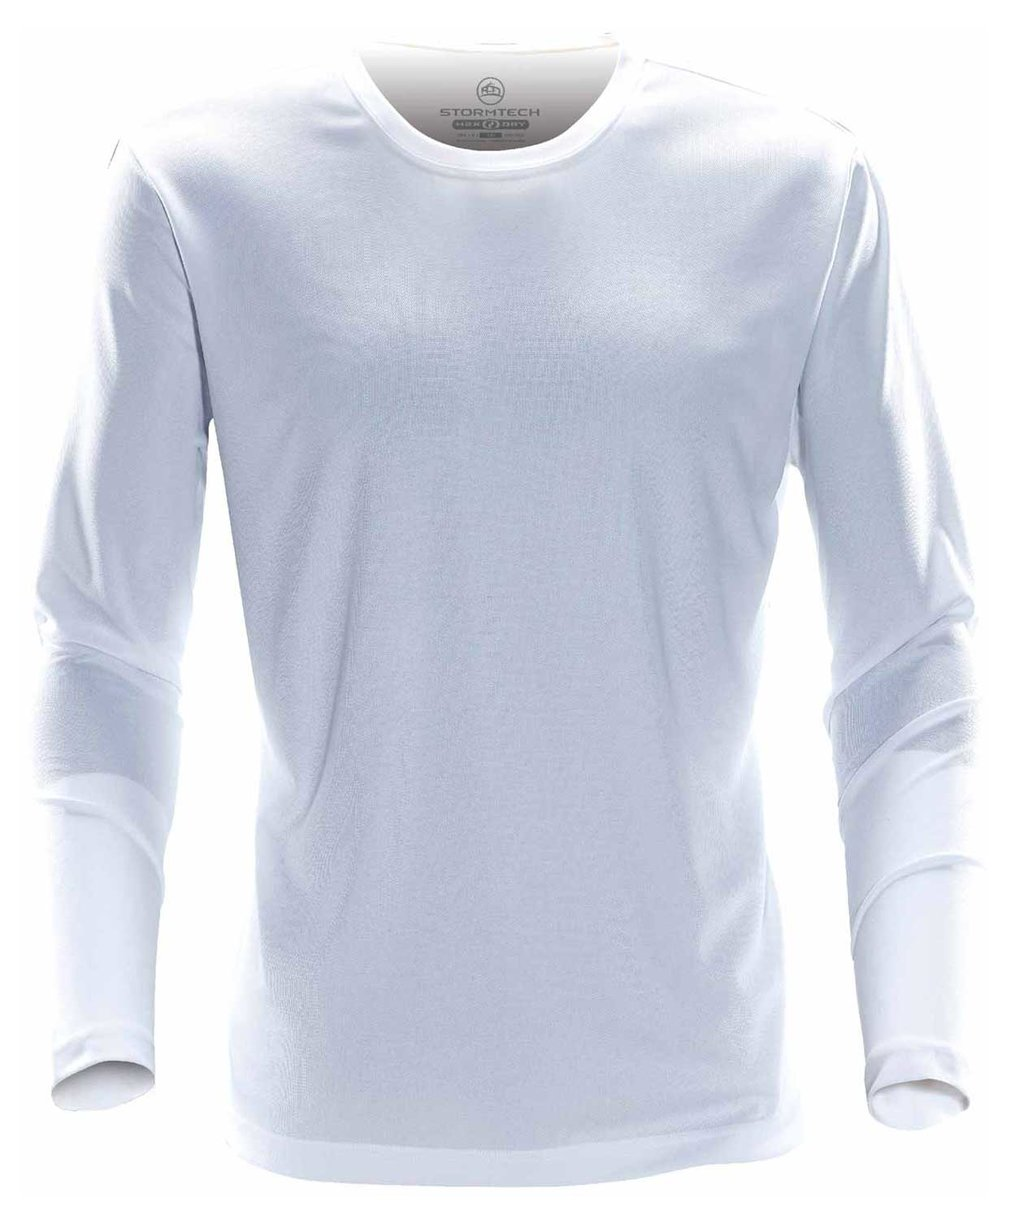 Stormtech Eclipse long-sleeved T-shirt, White